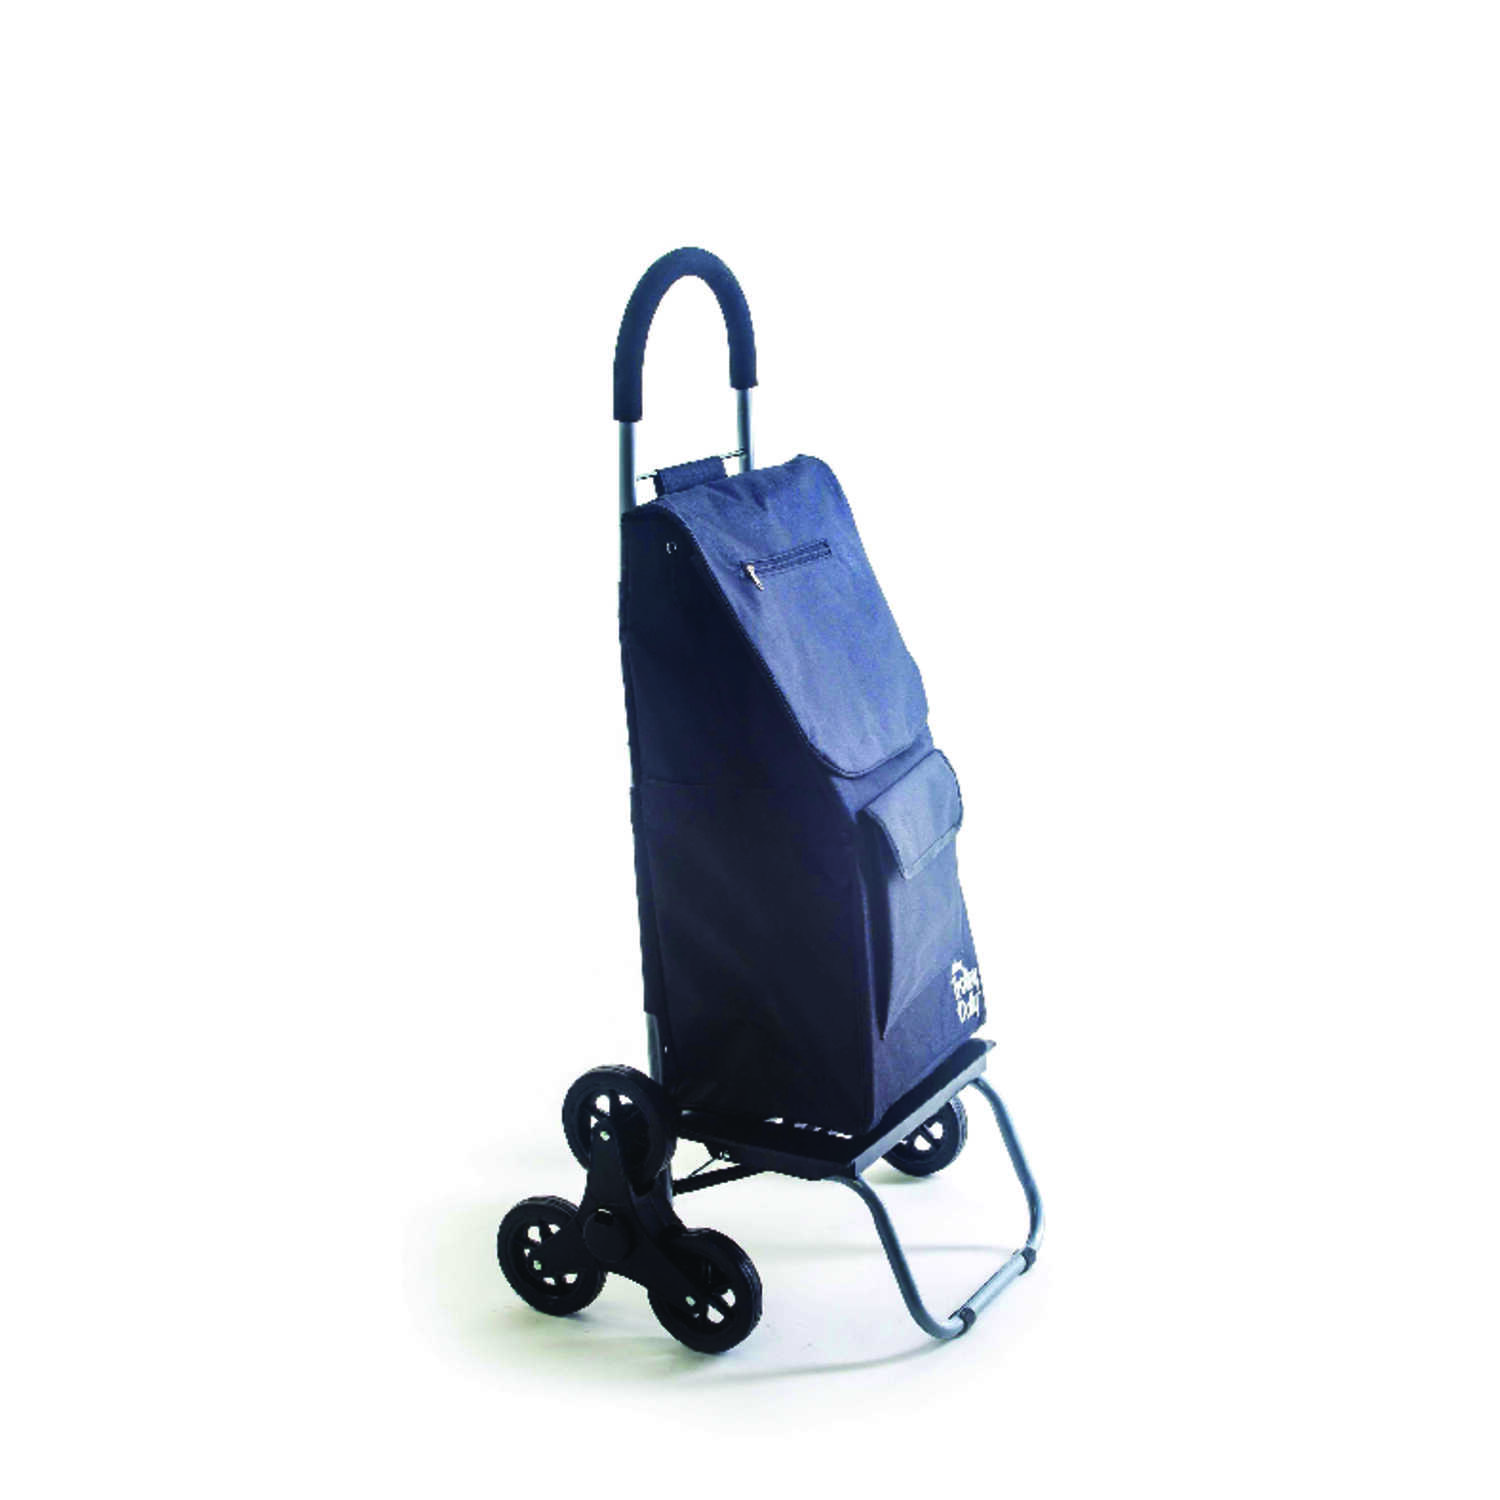 dbest Products  Trolley Dolly  38 in. H x 16 in. L x 18 in. W Collapsible Stair Climbing Shopping Ca